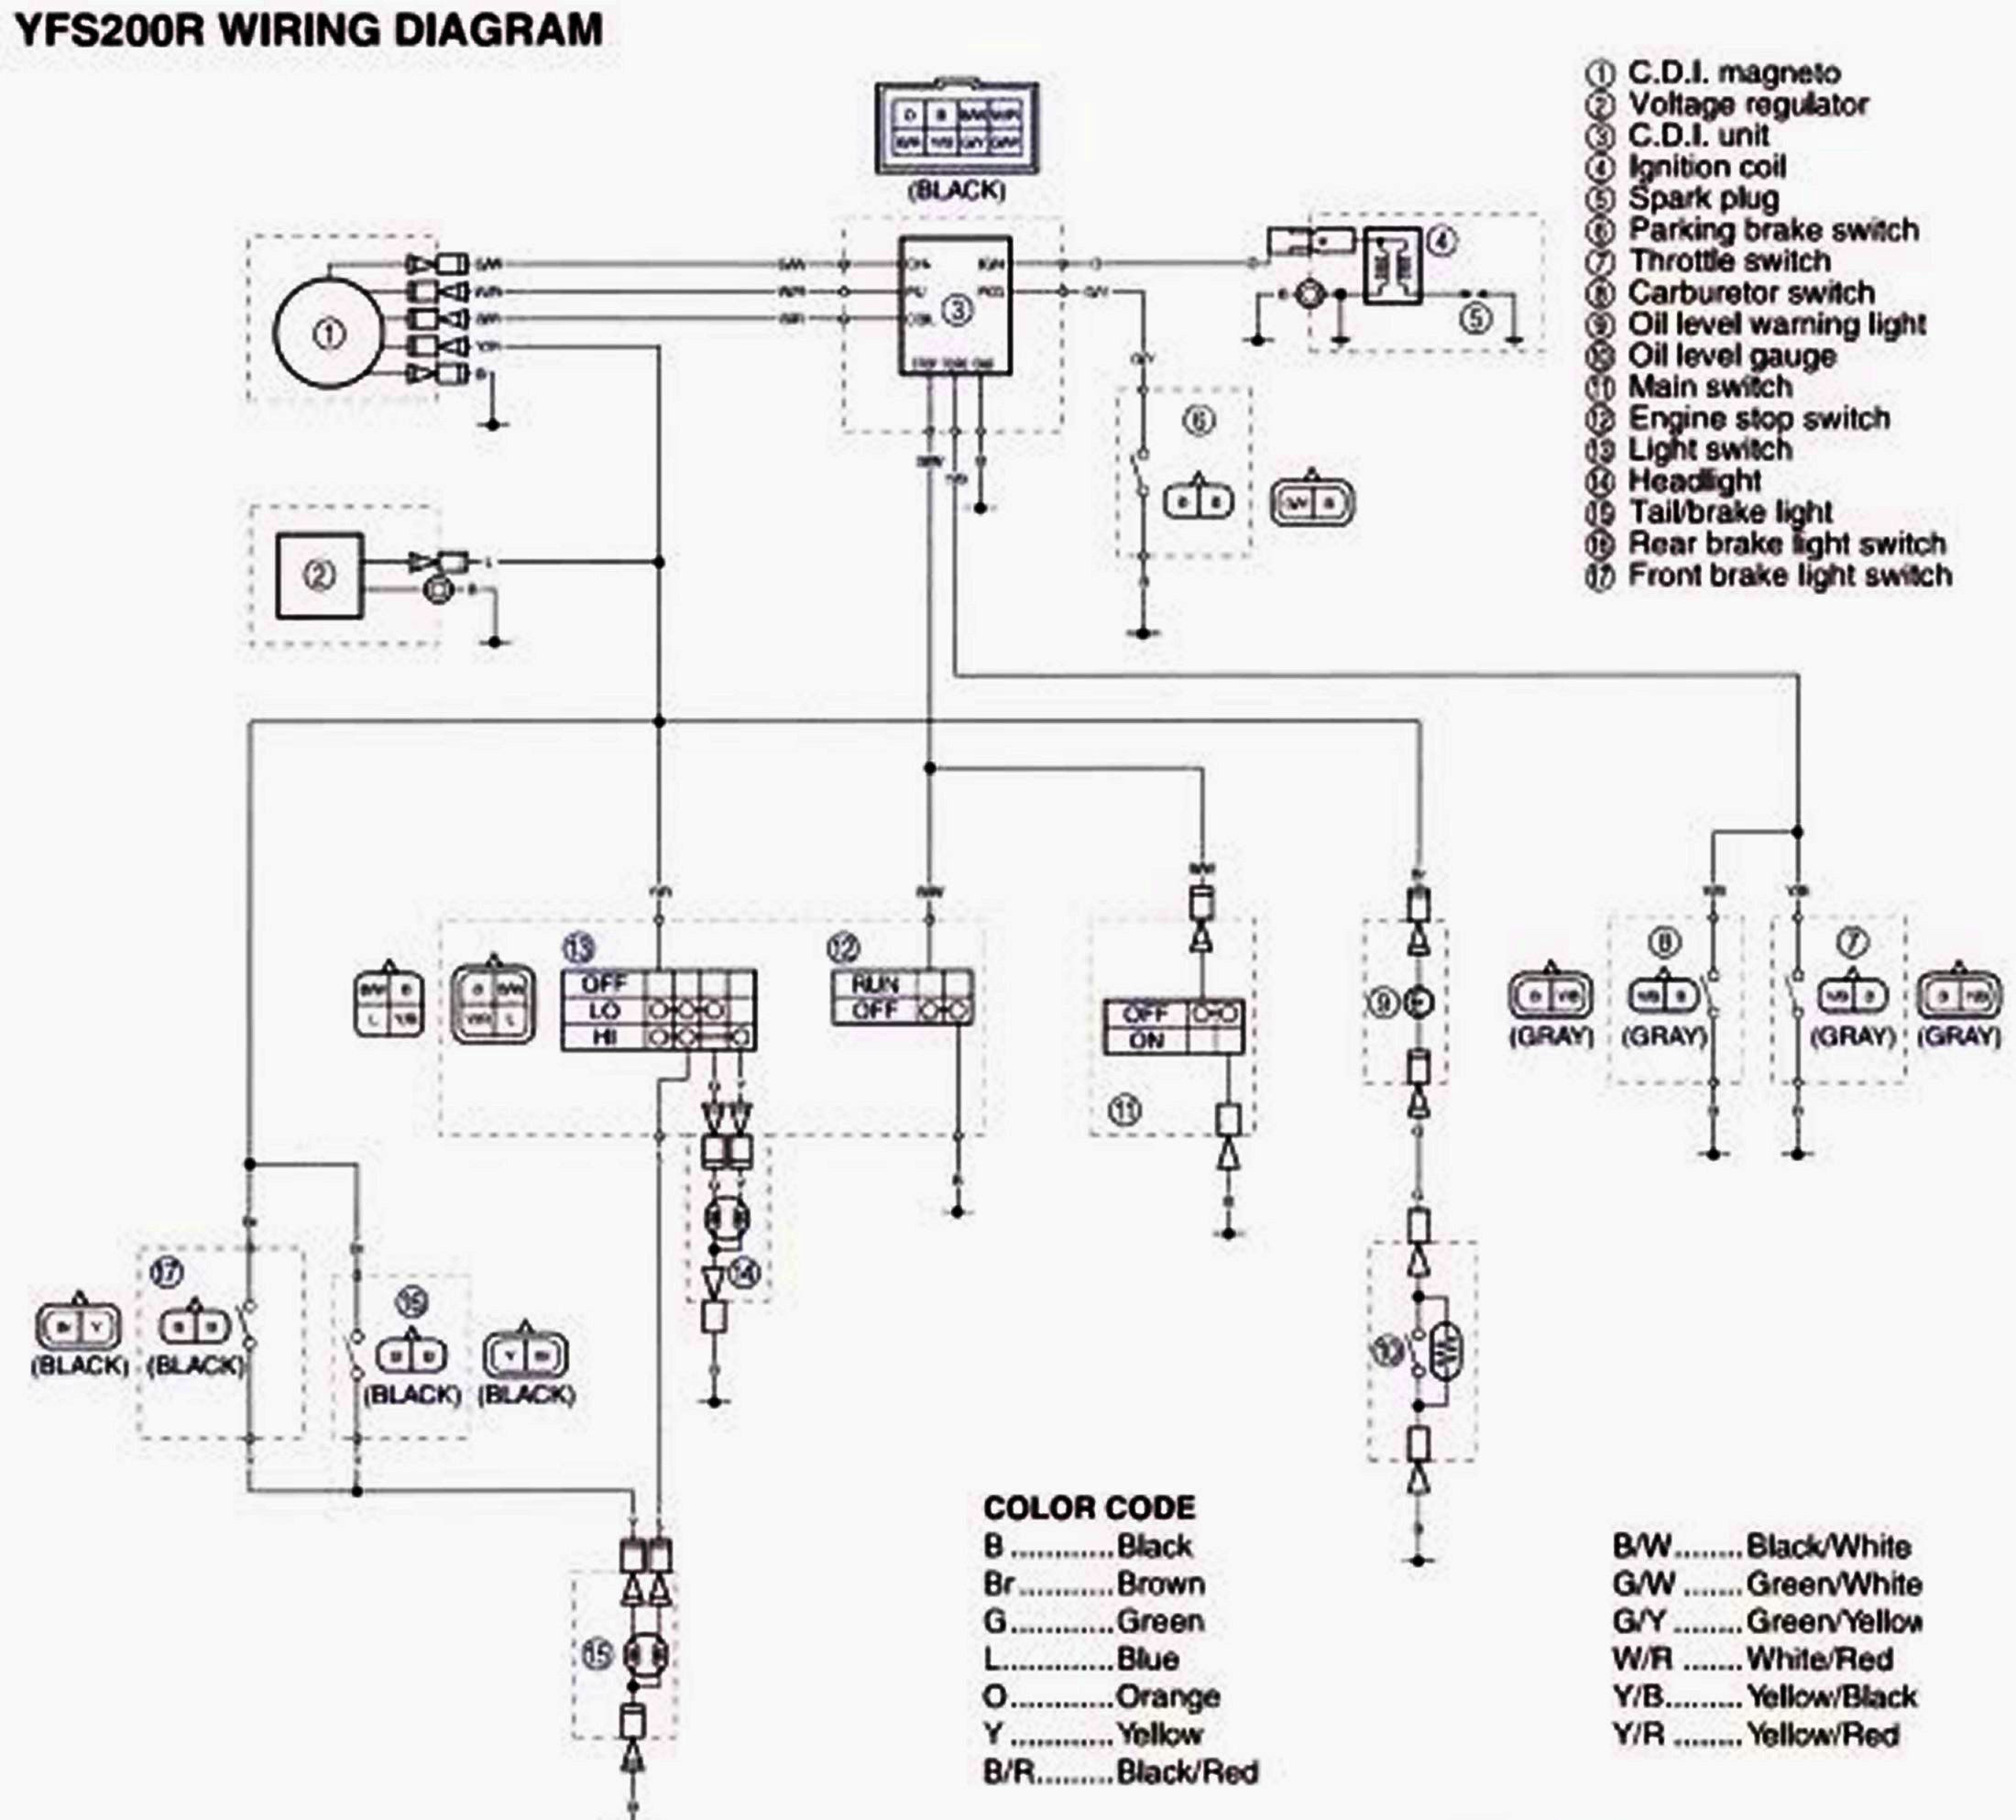 1999 skeeter zx190c wiring diagram